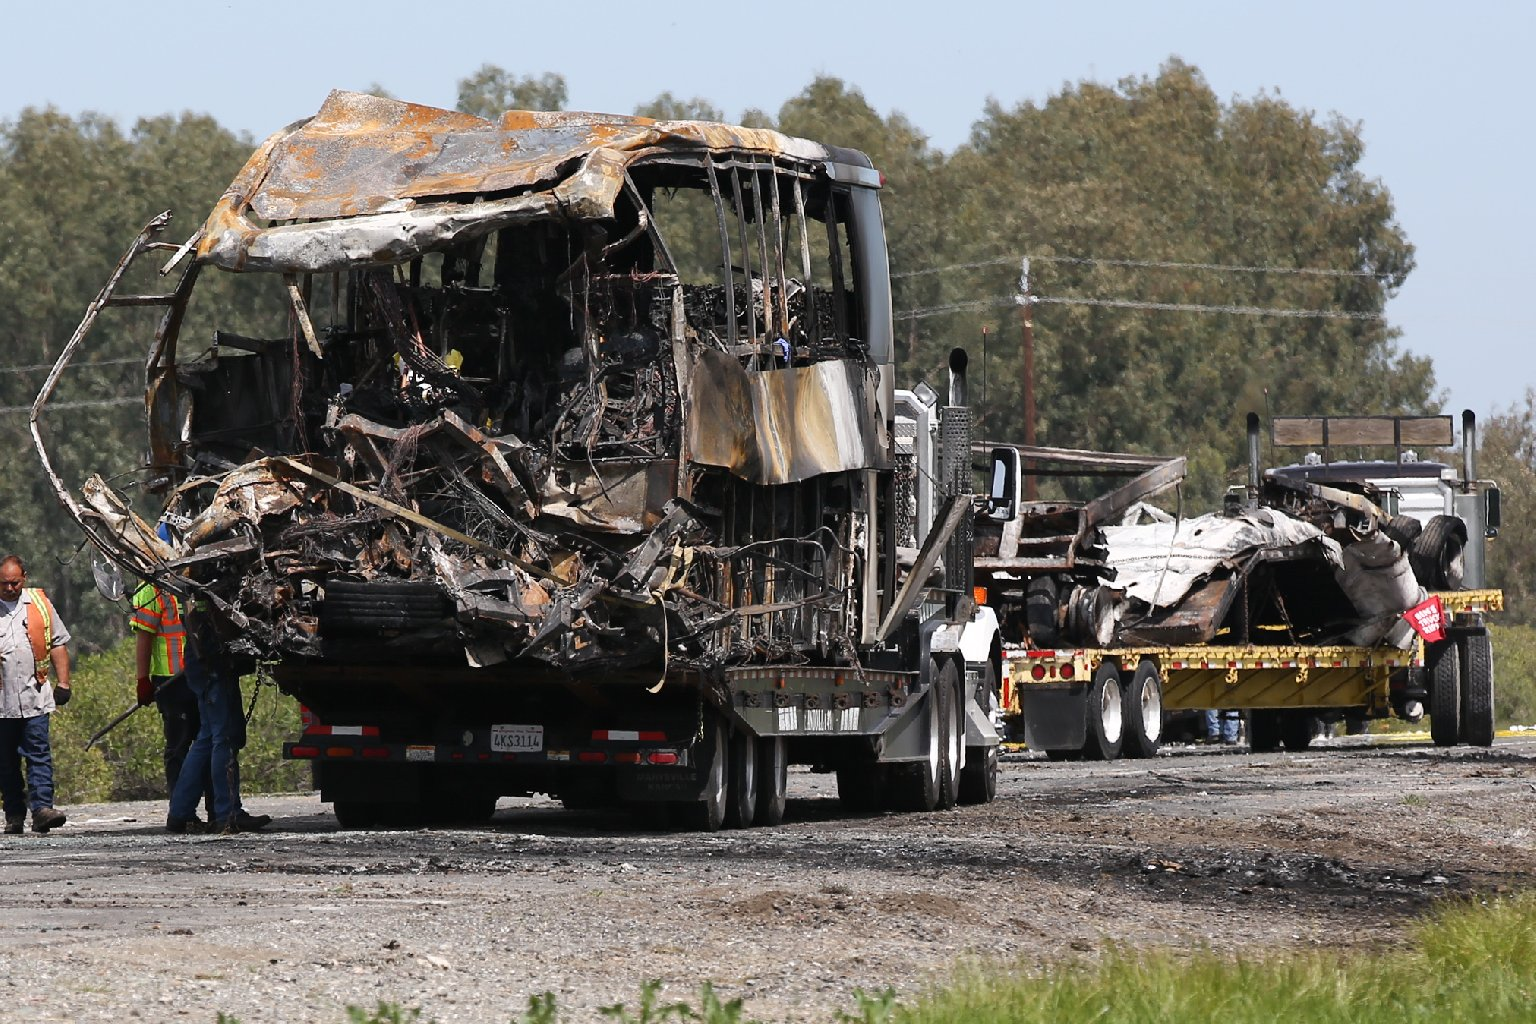 Interstate 5 Crash Witnesses: Truck on Fire Before Hitting Bus